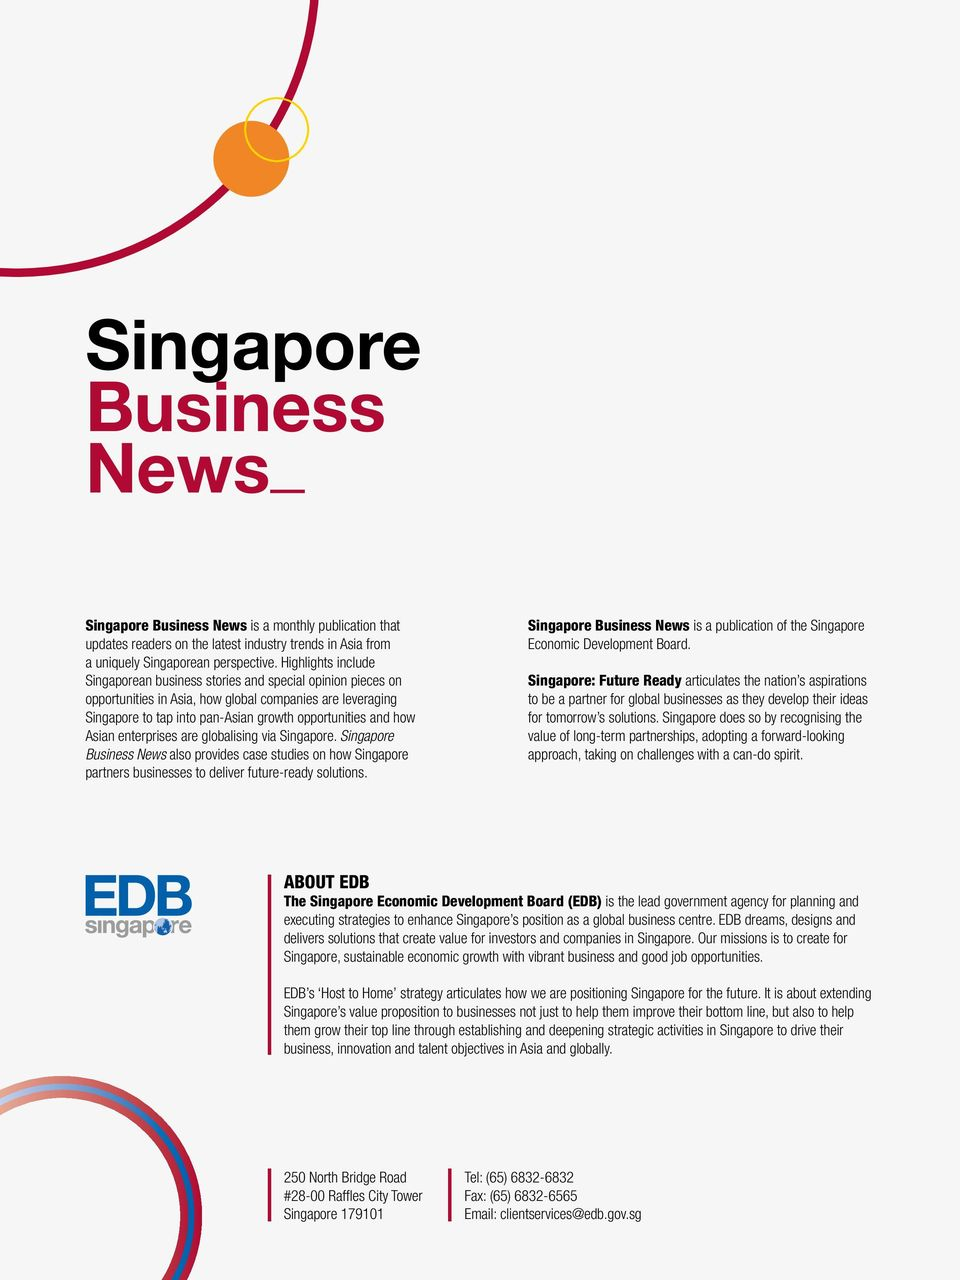 Asian enterprises are globalising via Singapore. Singapore Business News also provides case studies on how Singapore partners businesses to deliver future-ready solutions.